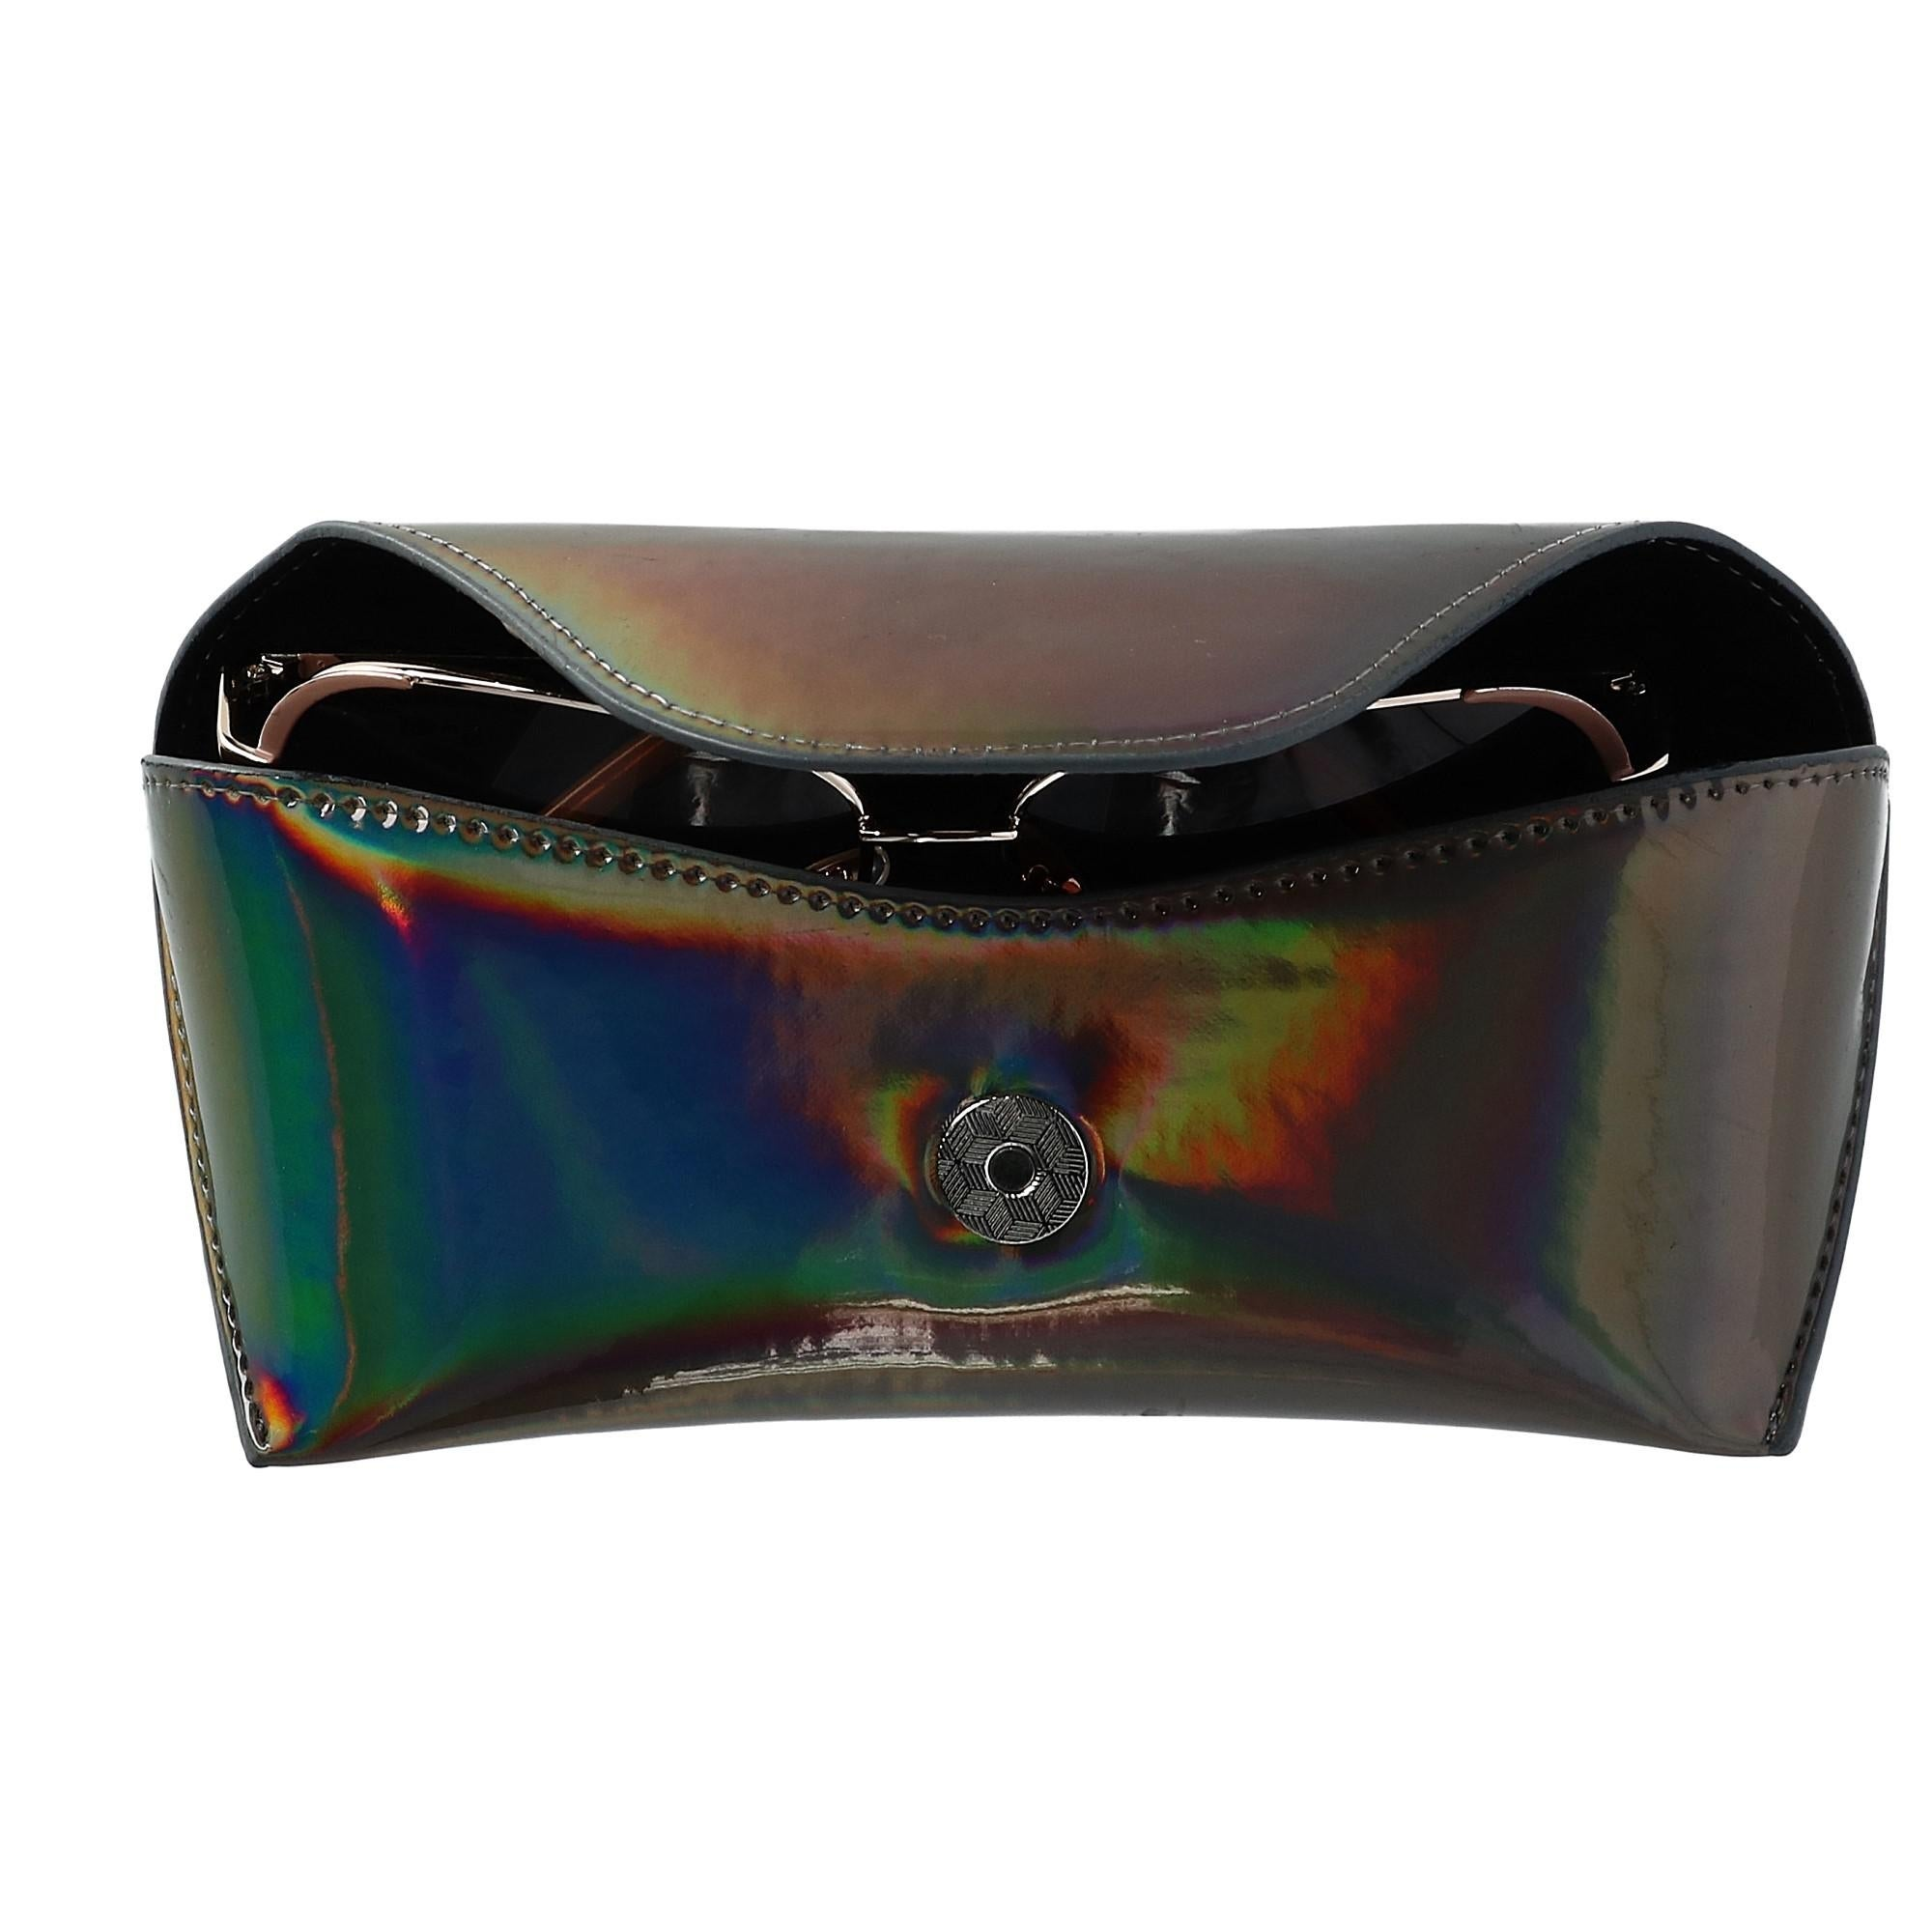 c9d246e09f3 Shop CTM® Women s Iridescent Glasses Case with Magnetic Closure - one size  - Free Shipping On Orders Over  45 - Overstock - 23620297